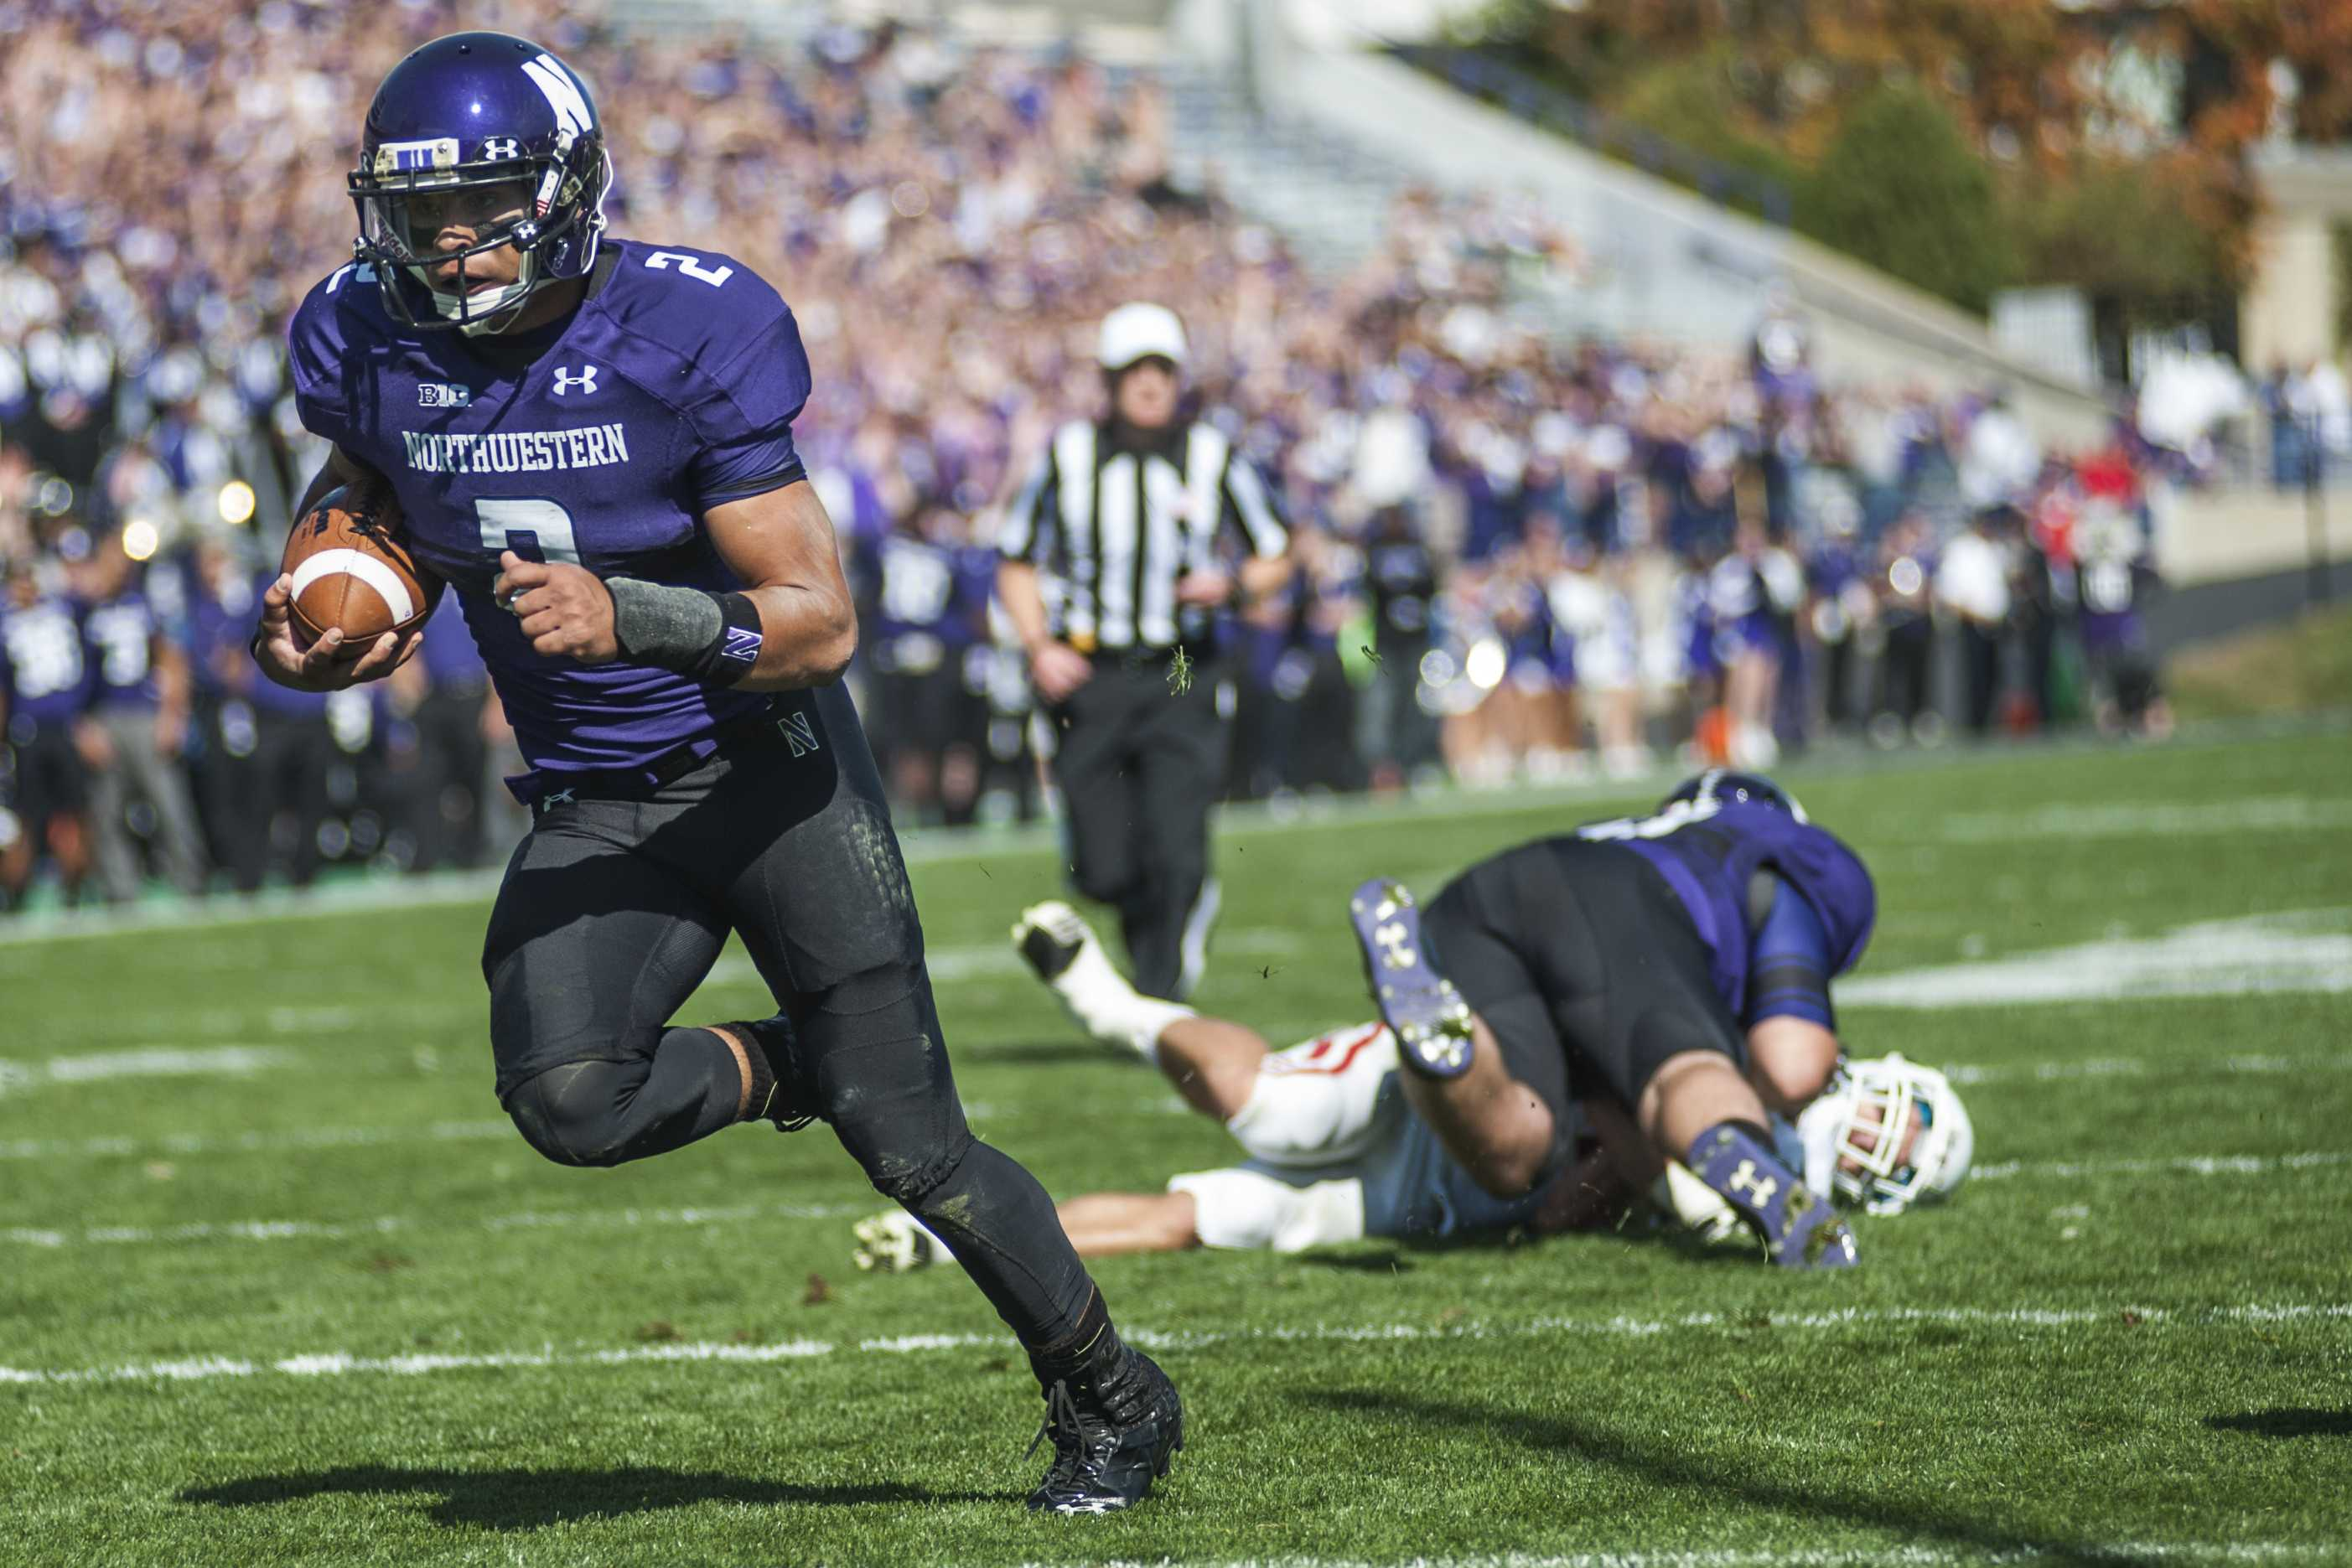 Northwestern quarterback Kain Colter scores one of four rushing touchdowns during Saturday's game against Indiana. Colter finished the game with 161 yards rushing.